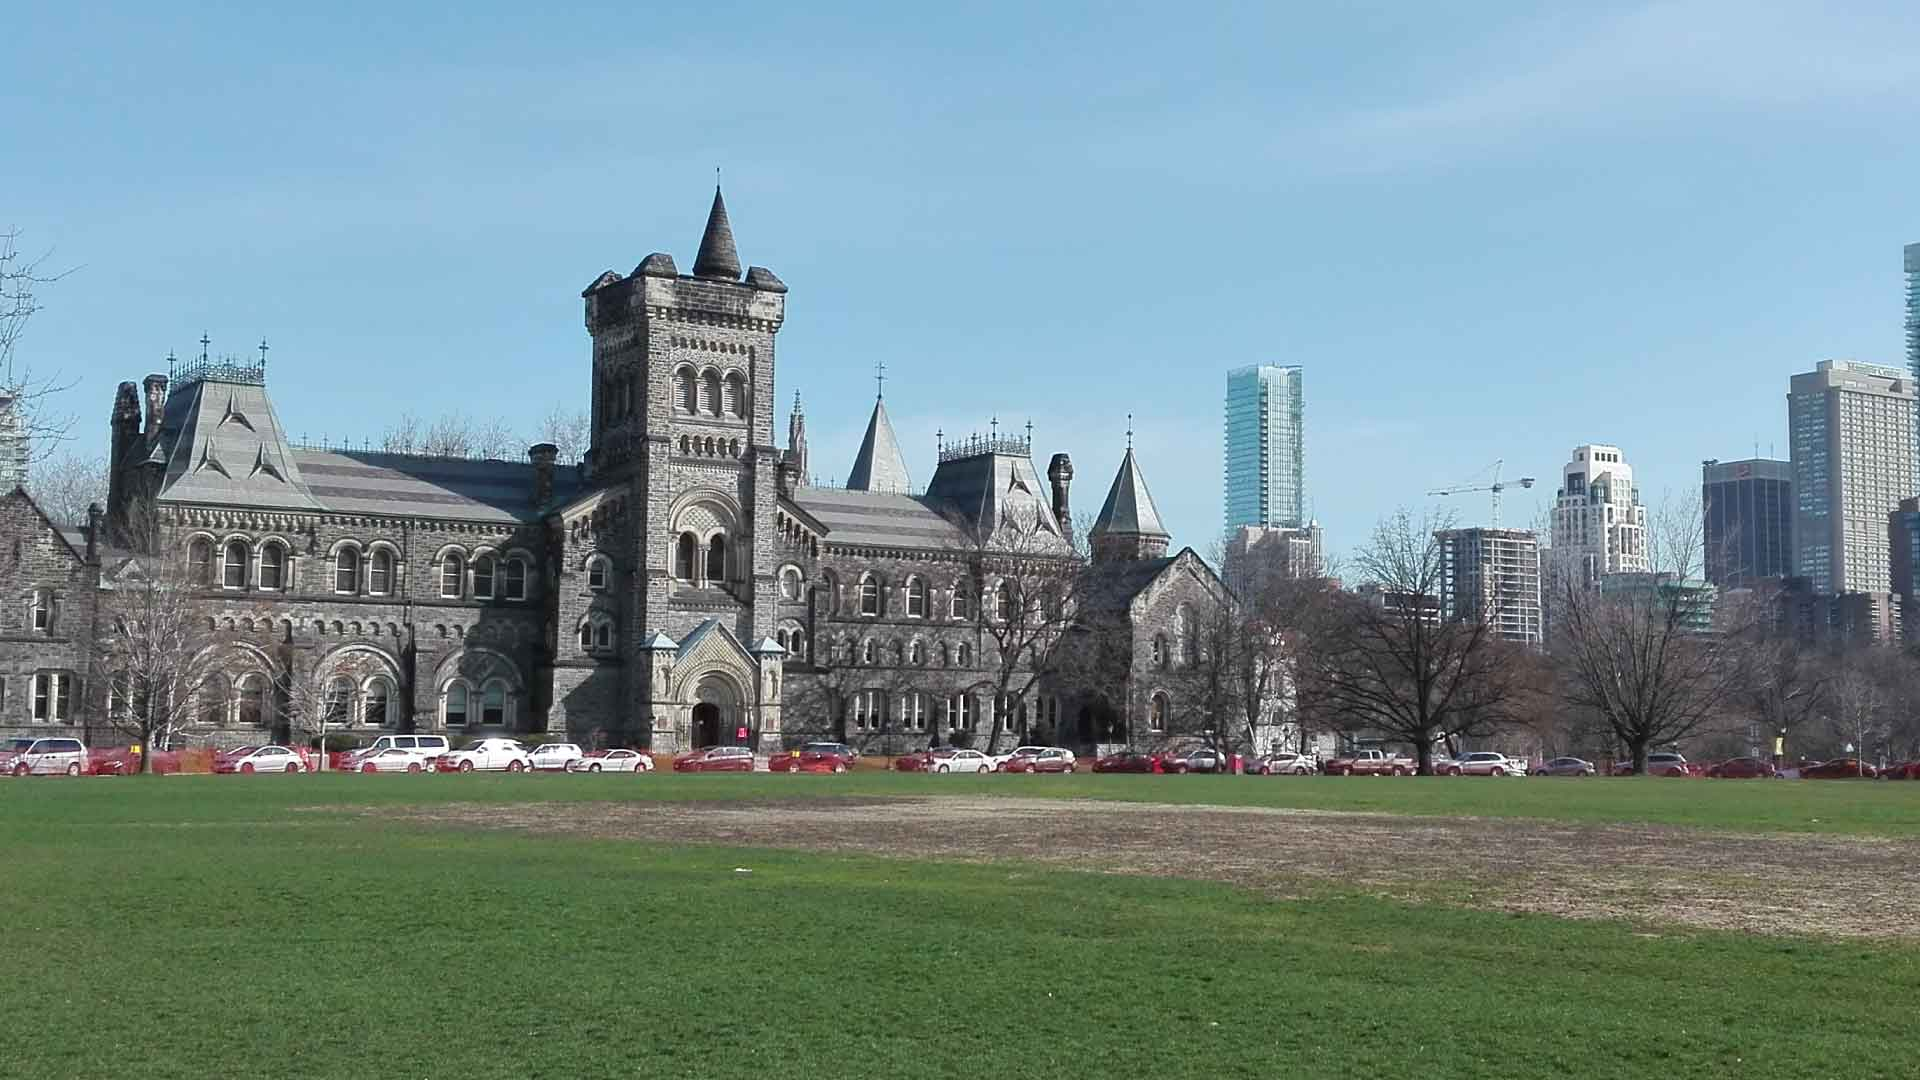 University College at the University of Toronto with the Toronto skyline to the right